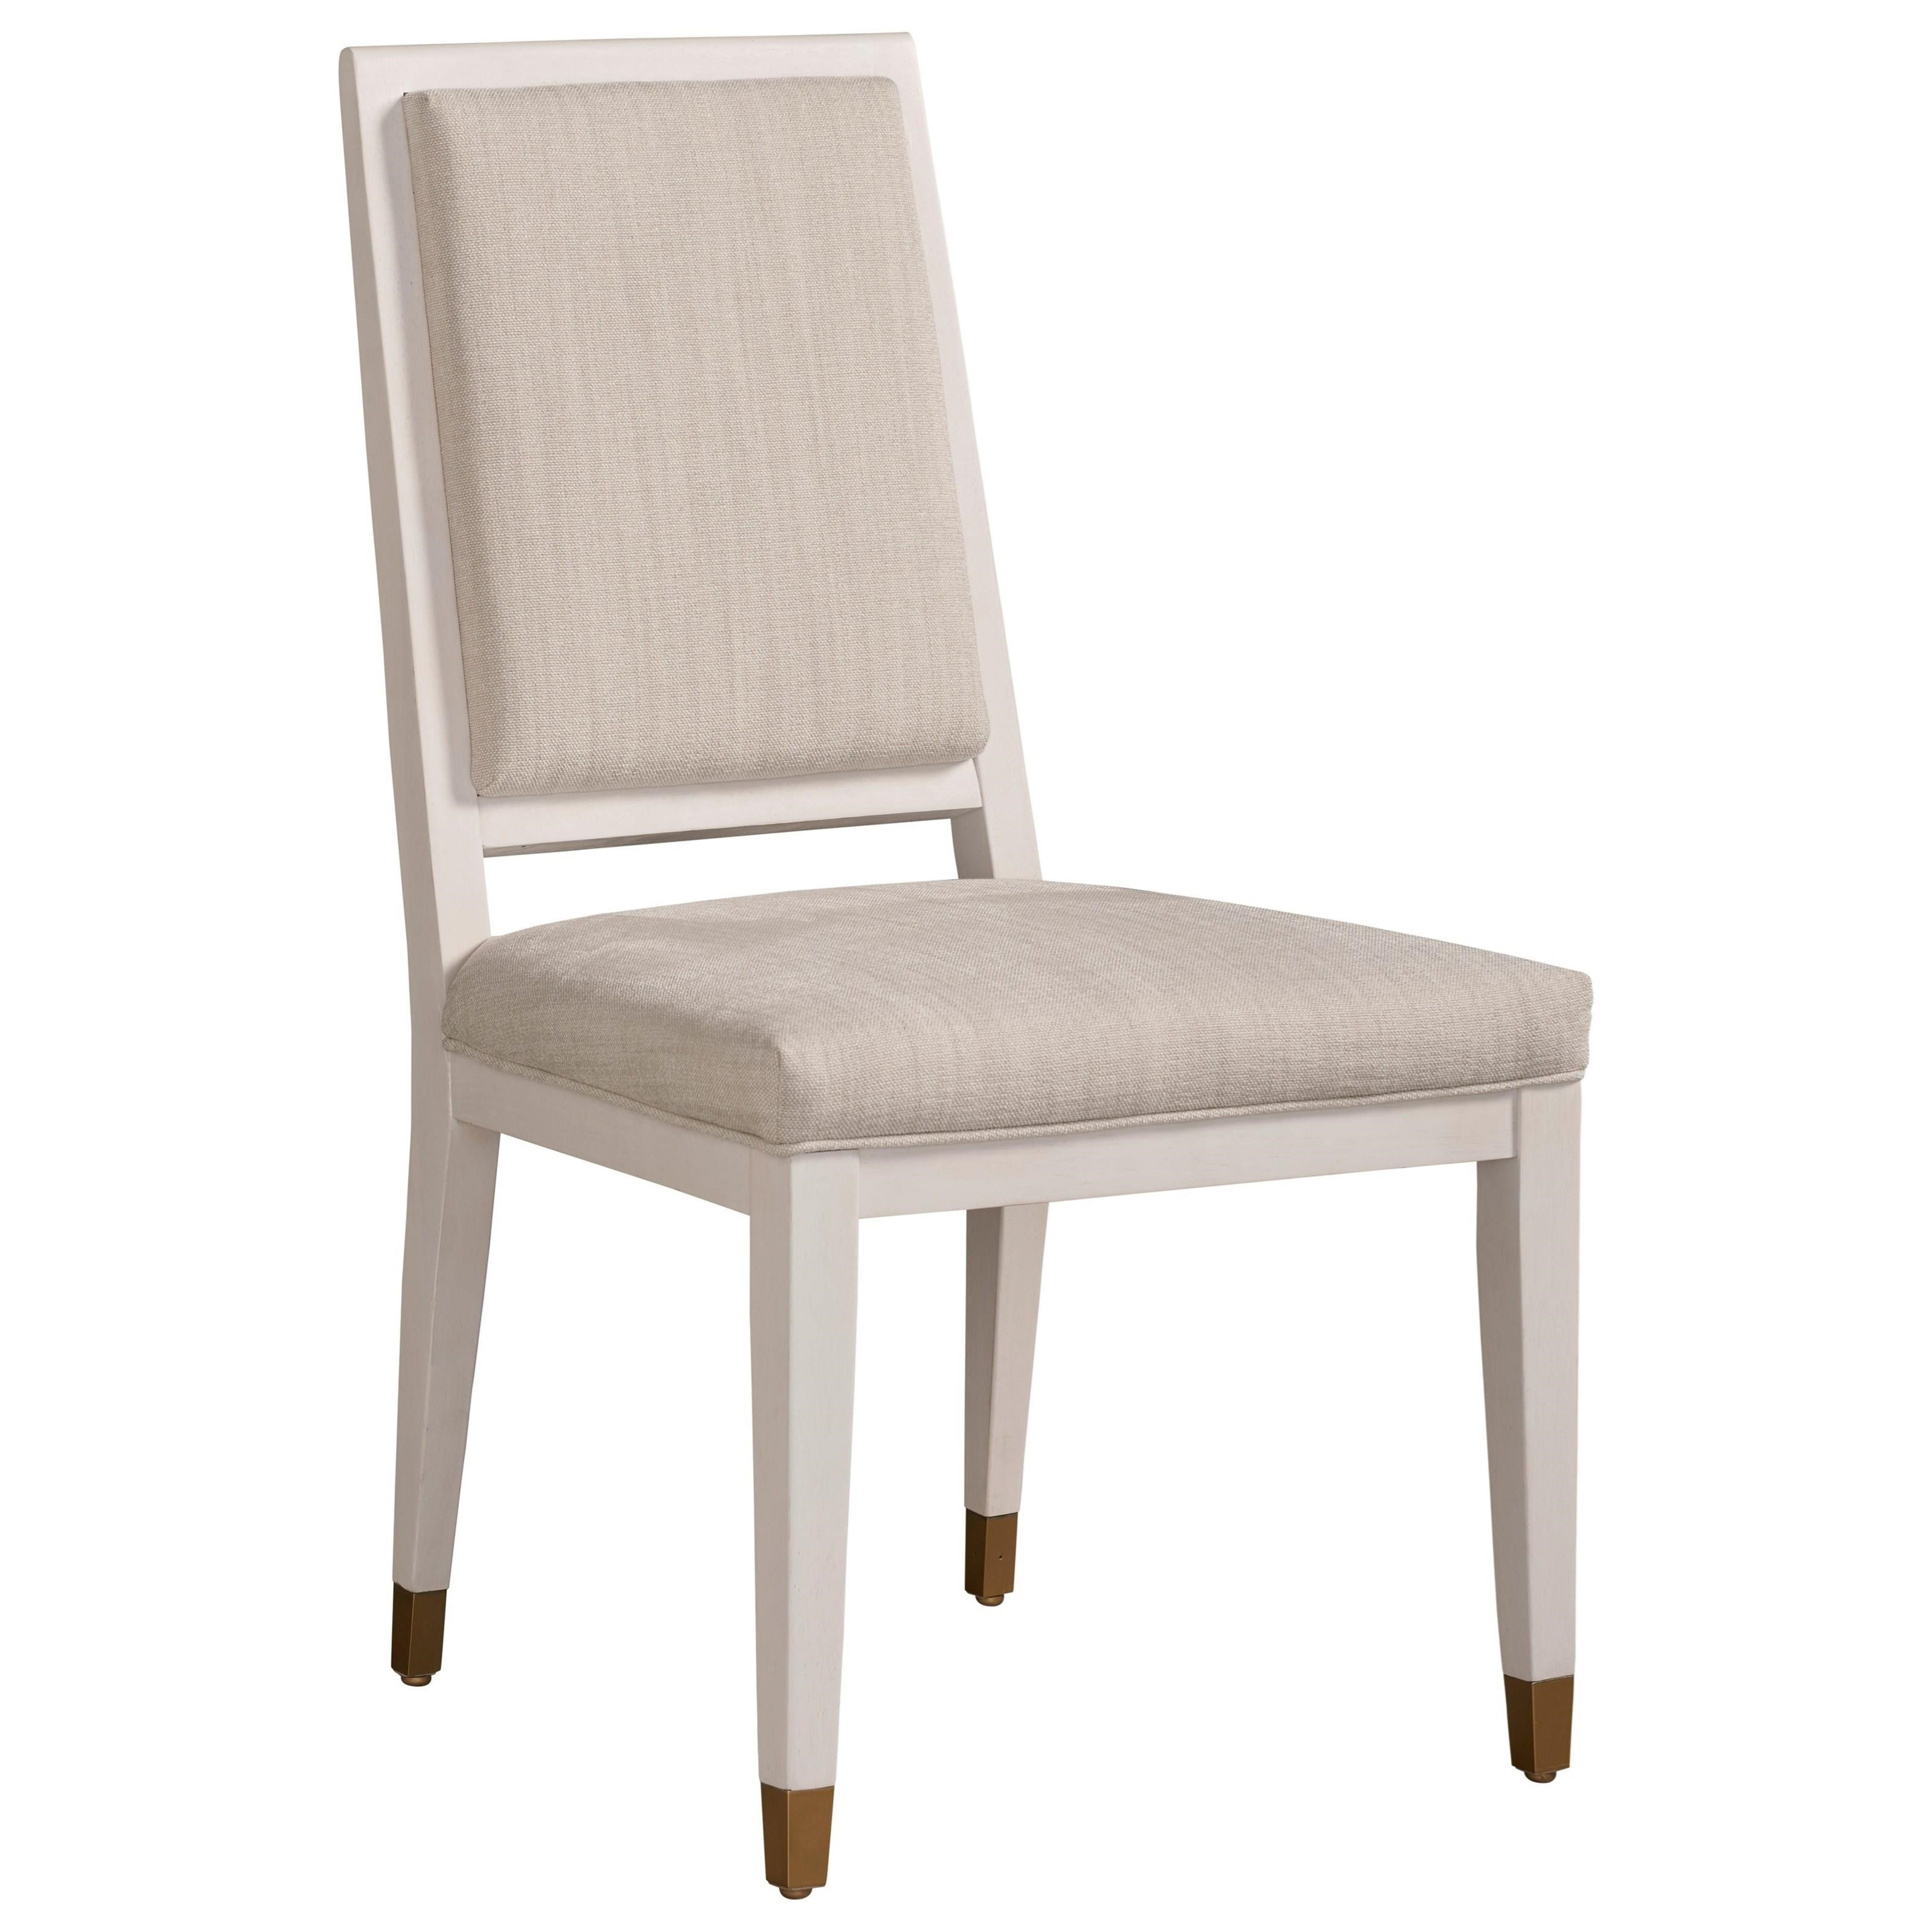 Love. Joy. Bliss.-Miranda Kerr Home Side Chair by Universal at Stoney Creek Furniture